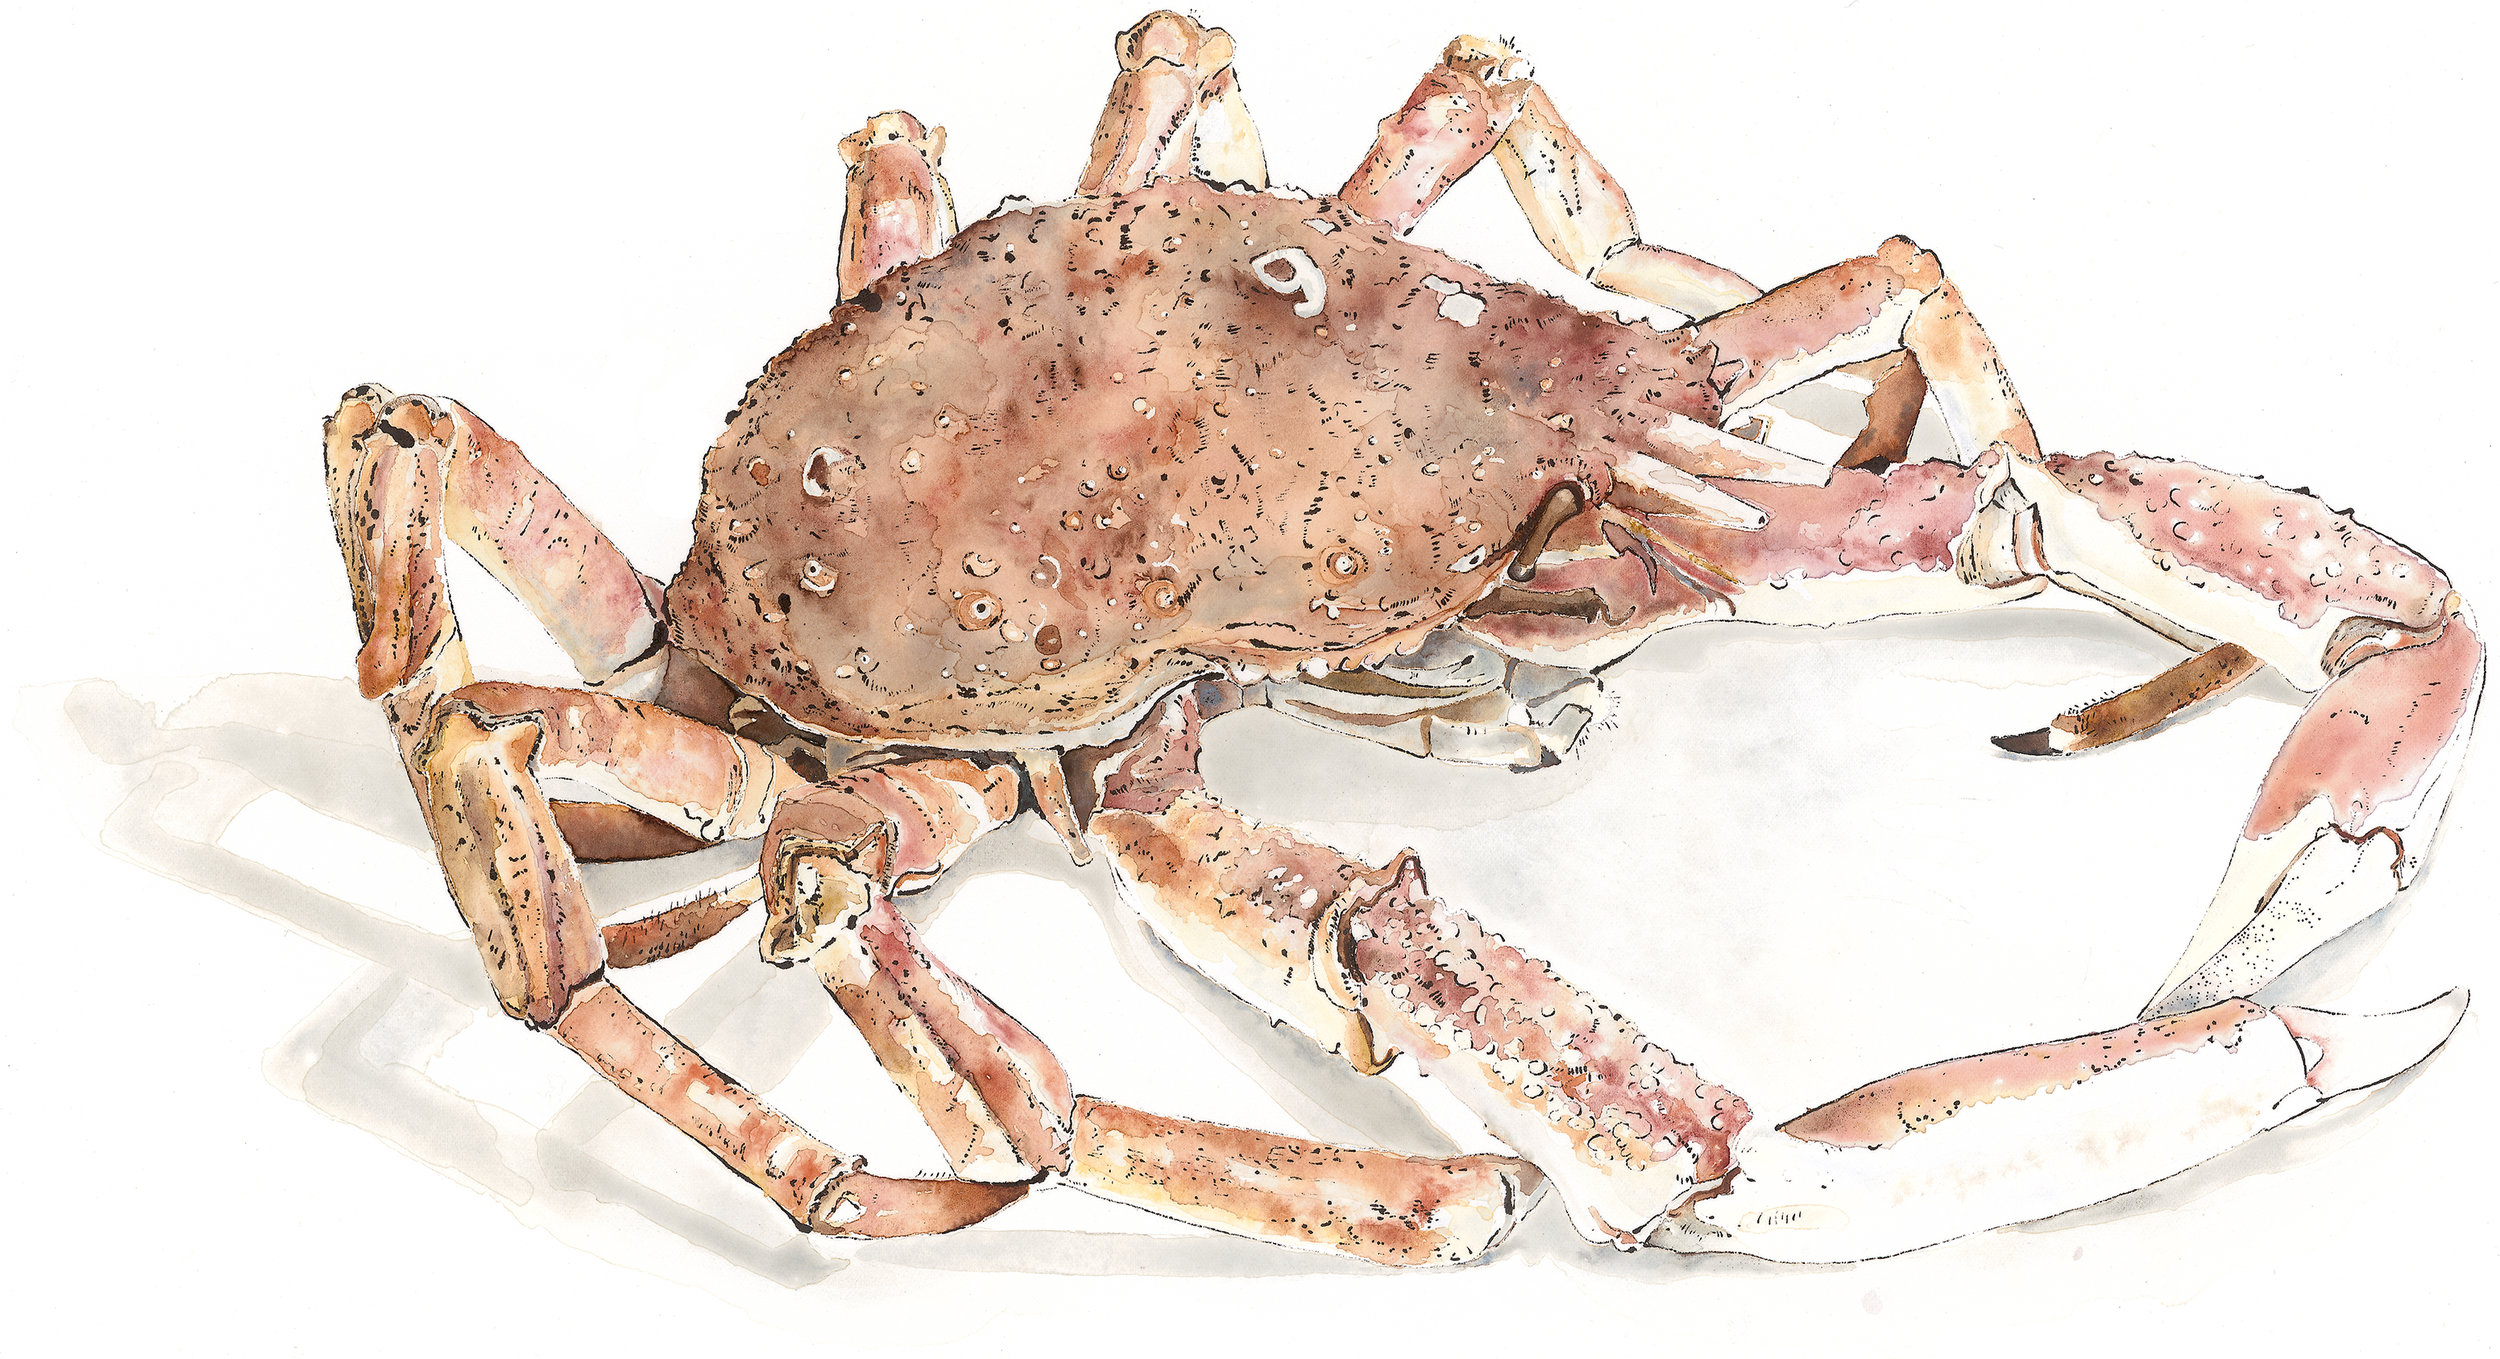 Spider-Crab-No.9-by-Lucy-Clayton-Blotted-Line-+-Watercolour-Painting-Print-Kent-Artist-Crustacean-Food-Illustrator-Illustration-Art-Seafood-.jpg